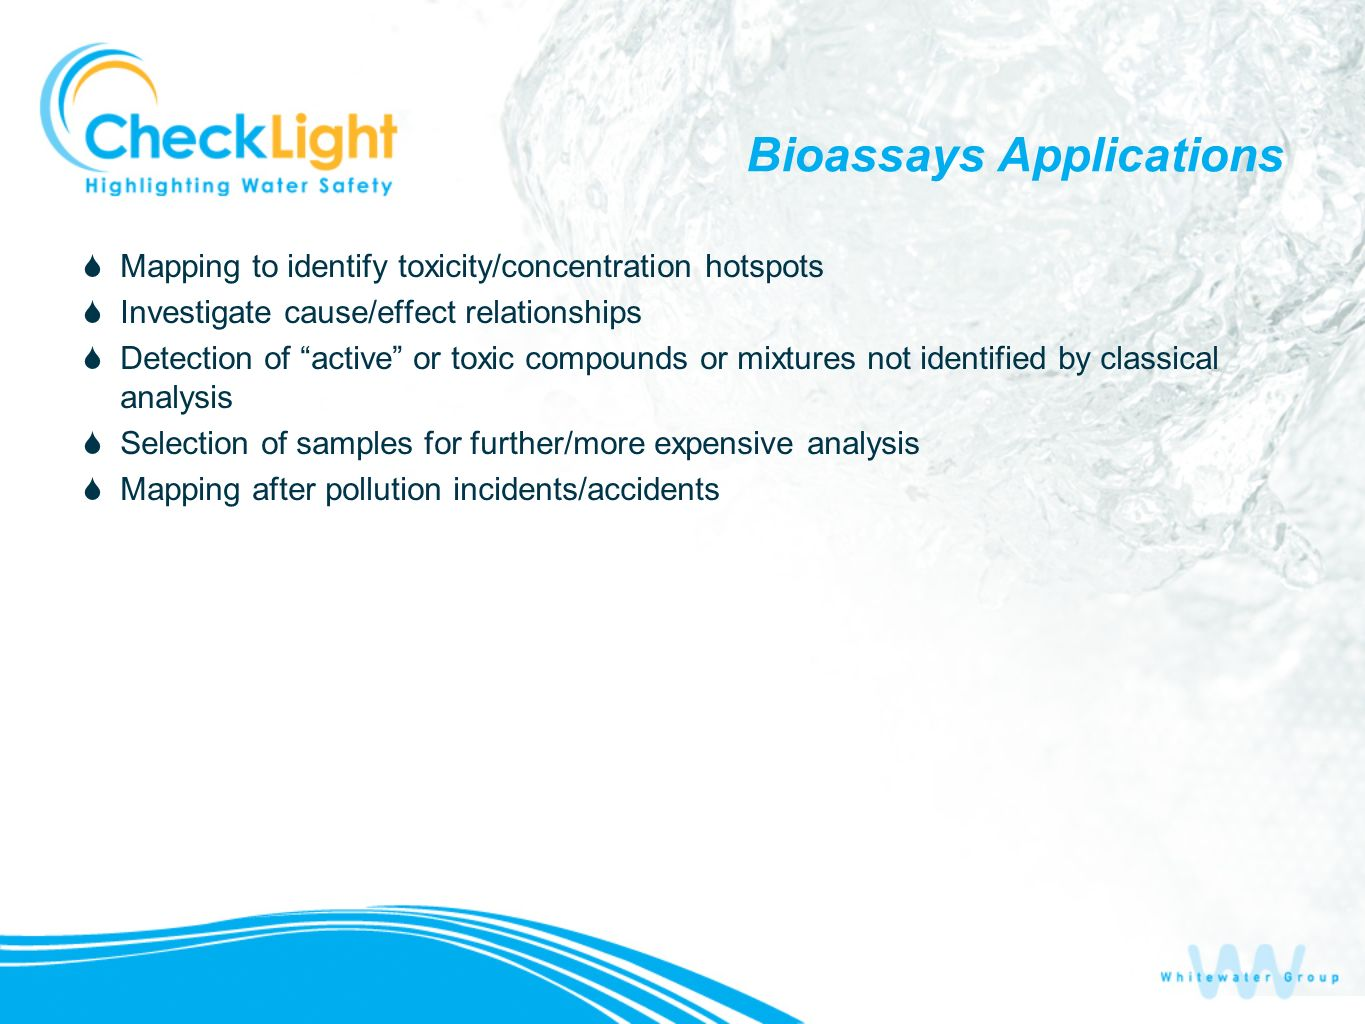 Bioassays Applications